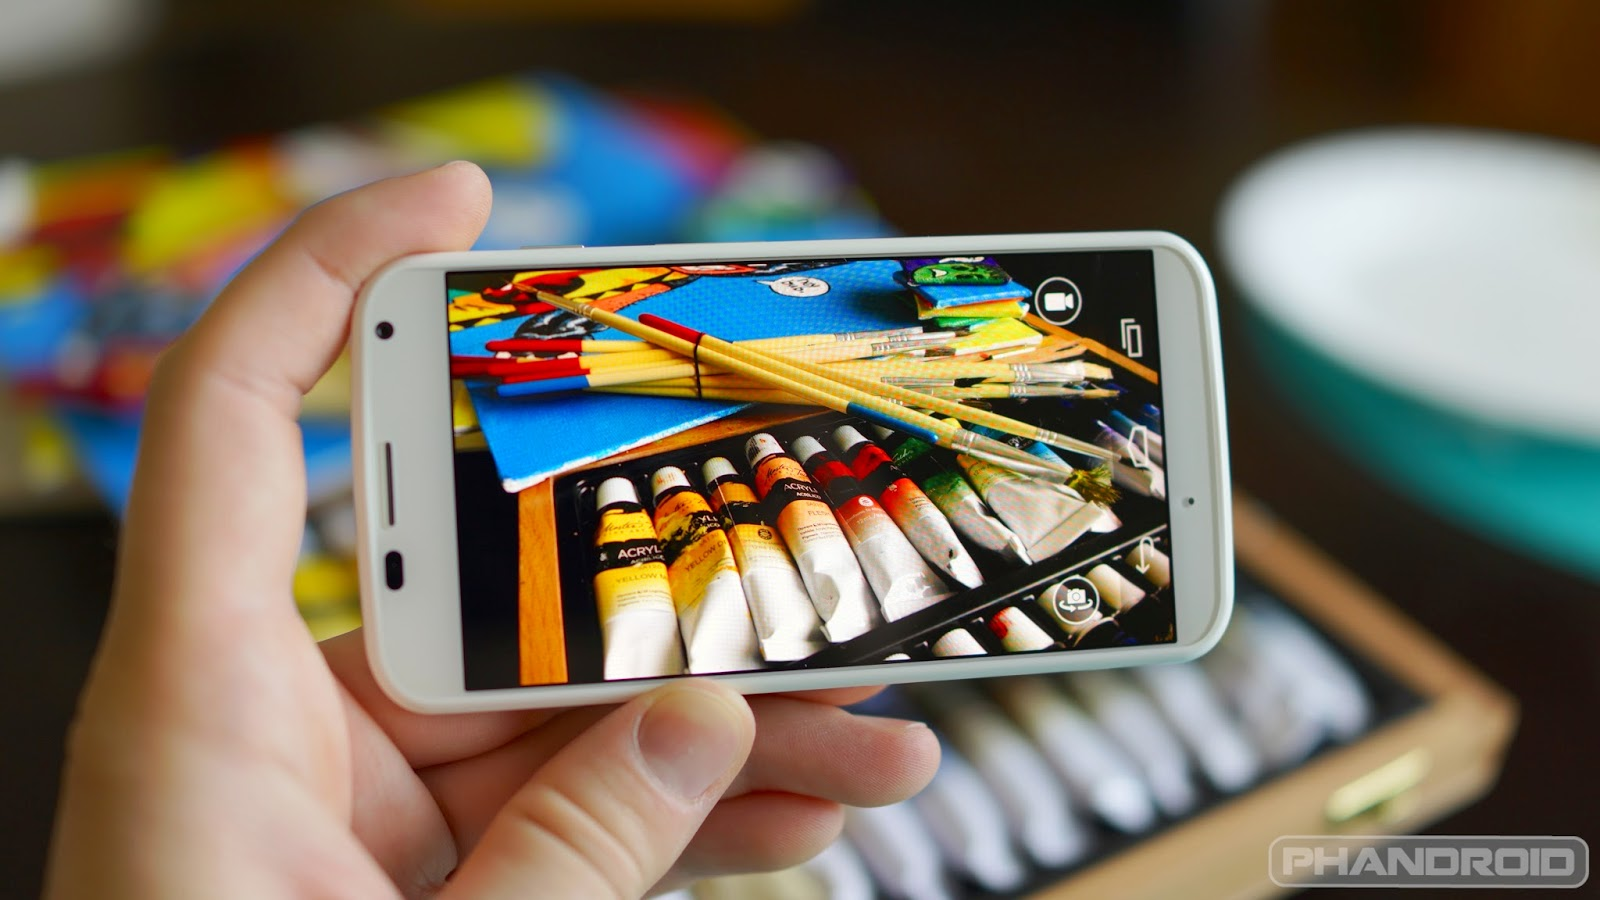 Motorola Moto X (2014) Specifications and Review: SIMPLE and SMART